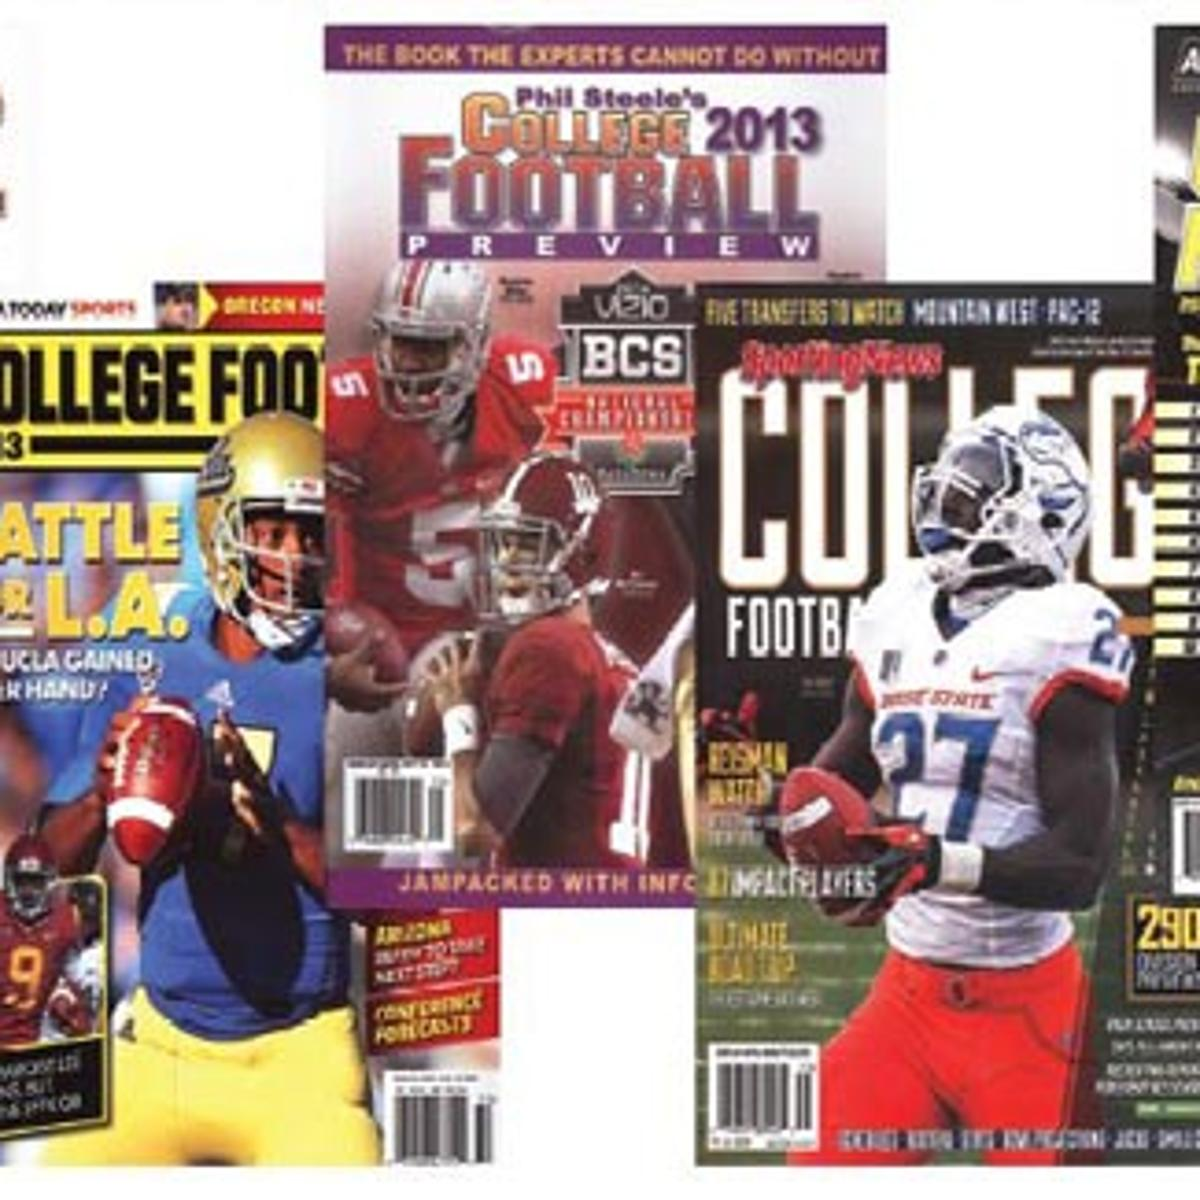 College Football Preview: Magazines are a sign football is almost